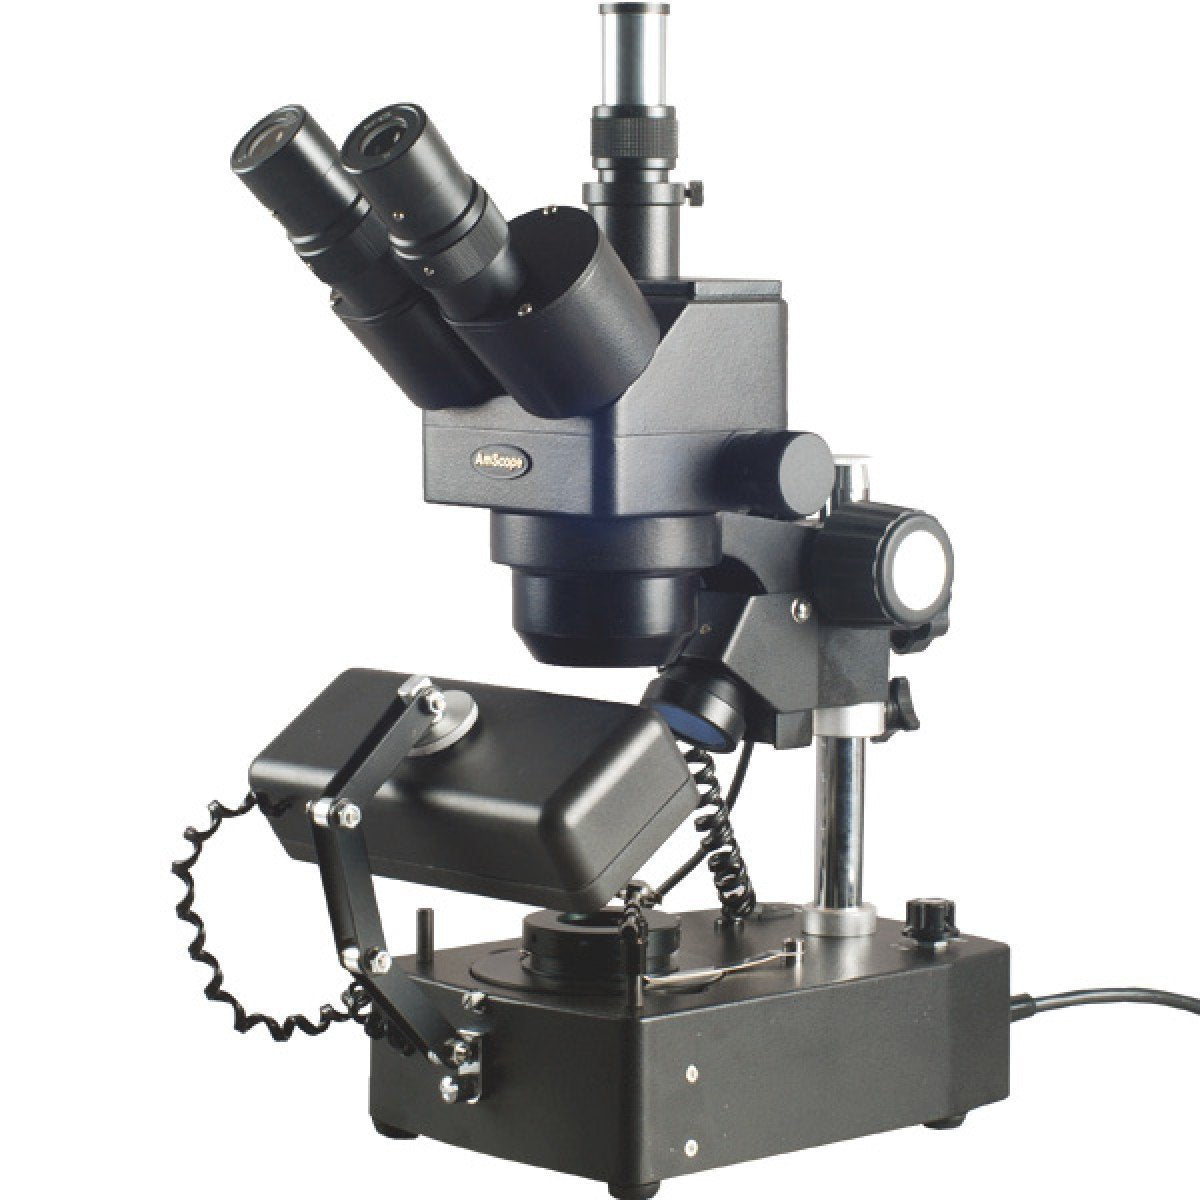 AmScope 5X-80X Jewelry Gem Trinocular Stereo Microscope with Three Lights - SH-2TZ-SL-DK